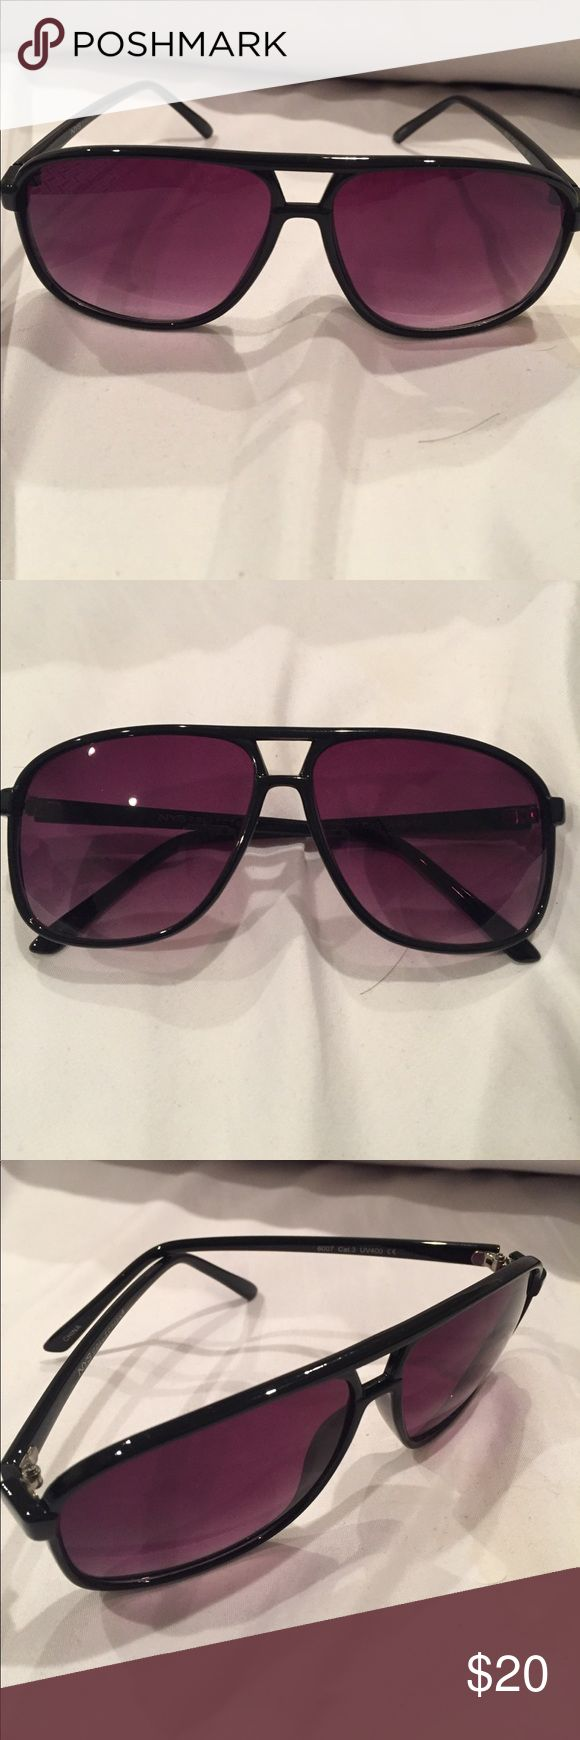 NYS sunglasses Brand new NYS Sunglasses. Never been worn. Bought for my husband but they didn't work out for him. sunglasses bag included. NYS Accessories Sunglasses